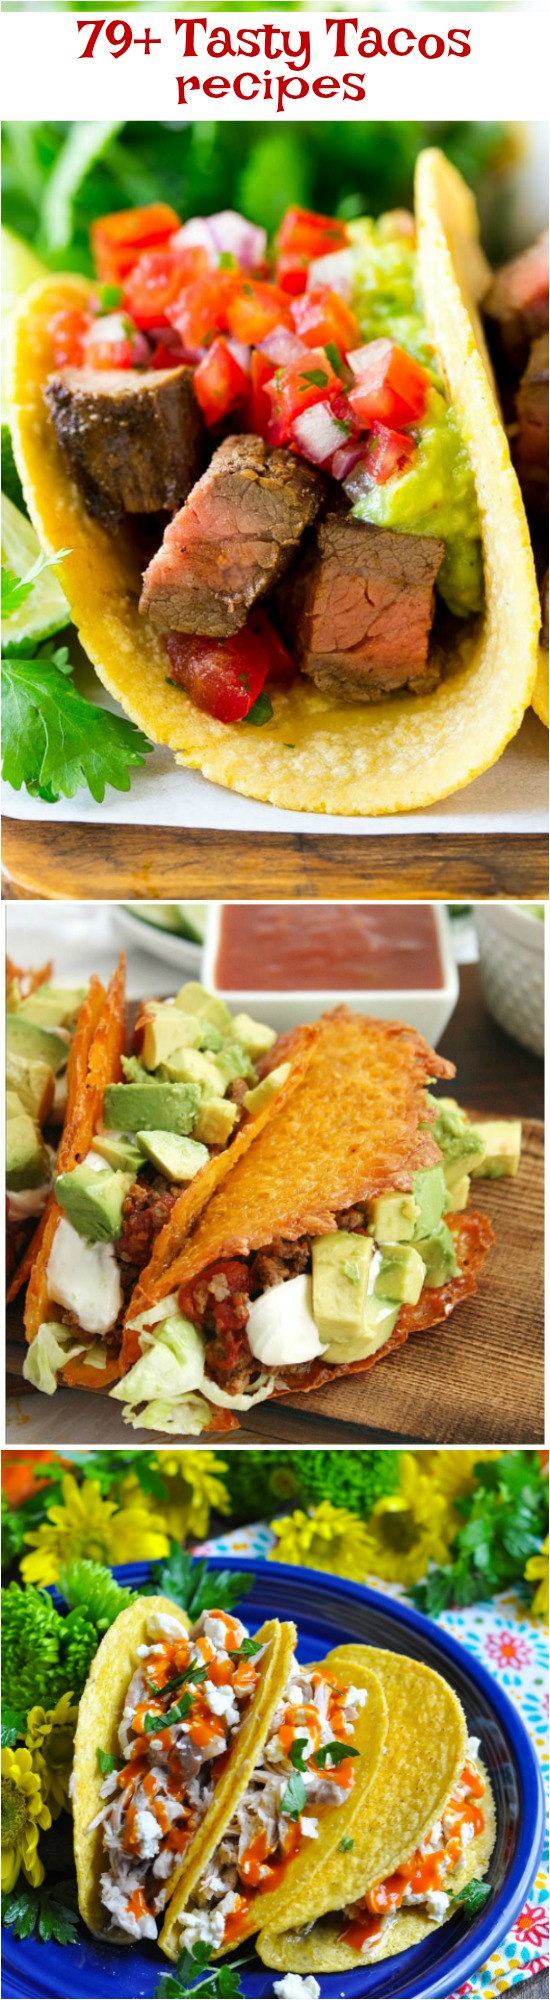 Tasty Tacos 79+ Ways for easy weeknight meals or gourmet entertaining, there's a recipe in this collection for you!